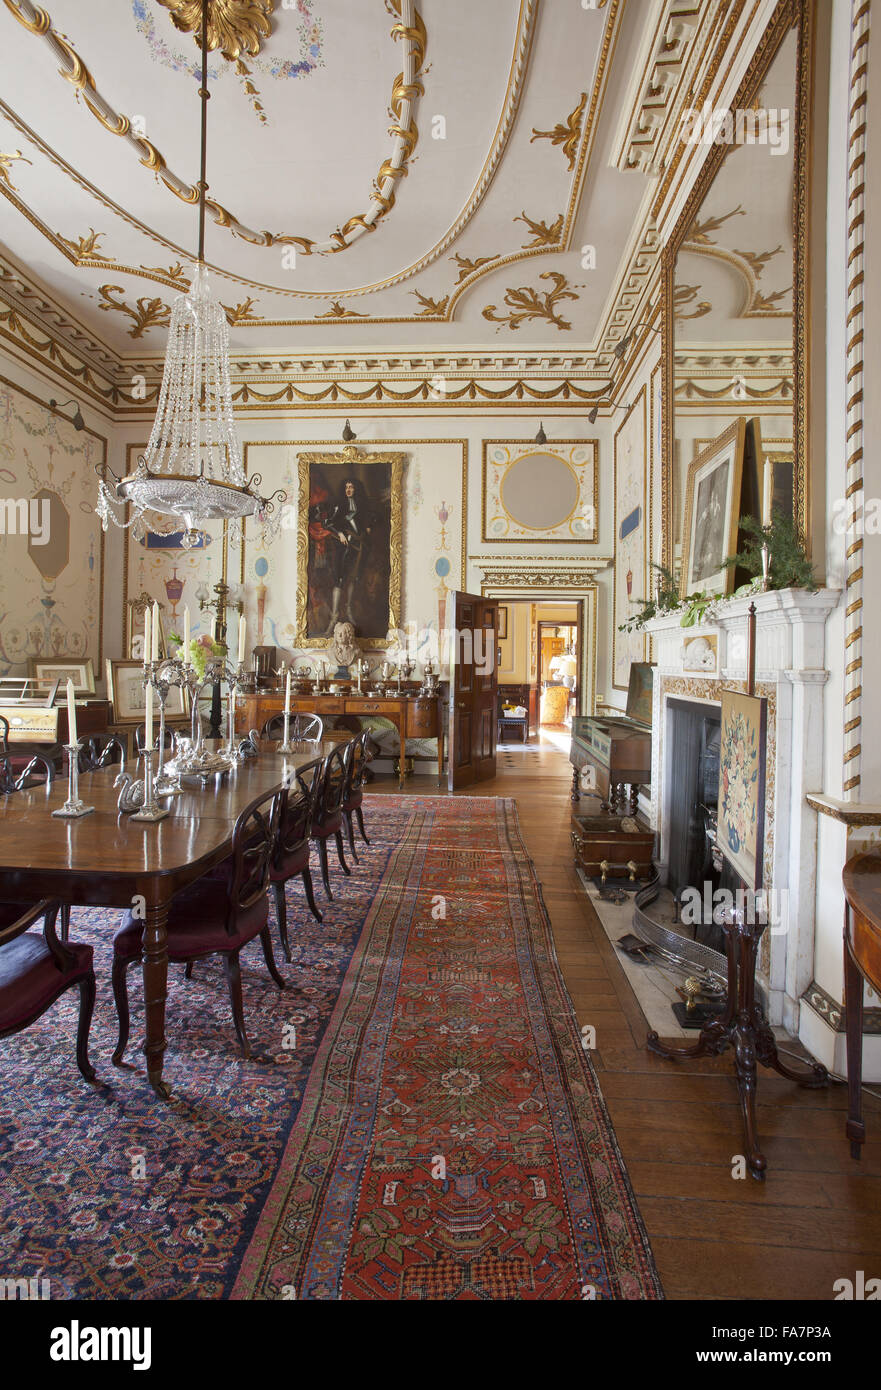 the dining room at hatchlands park, surrey stock photo, royalty